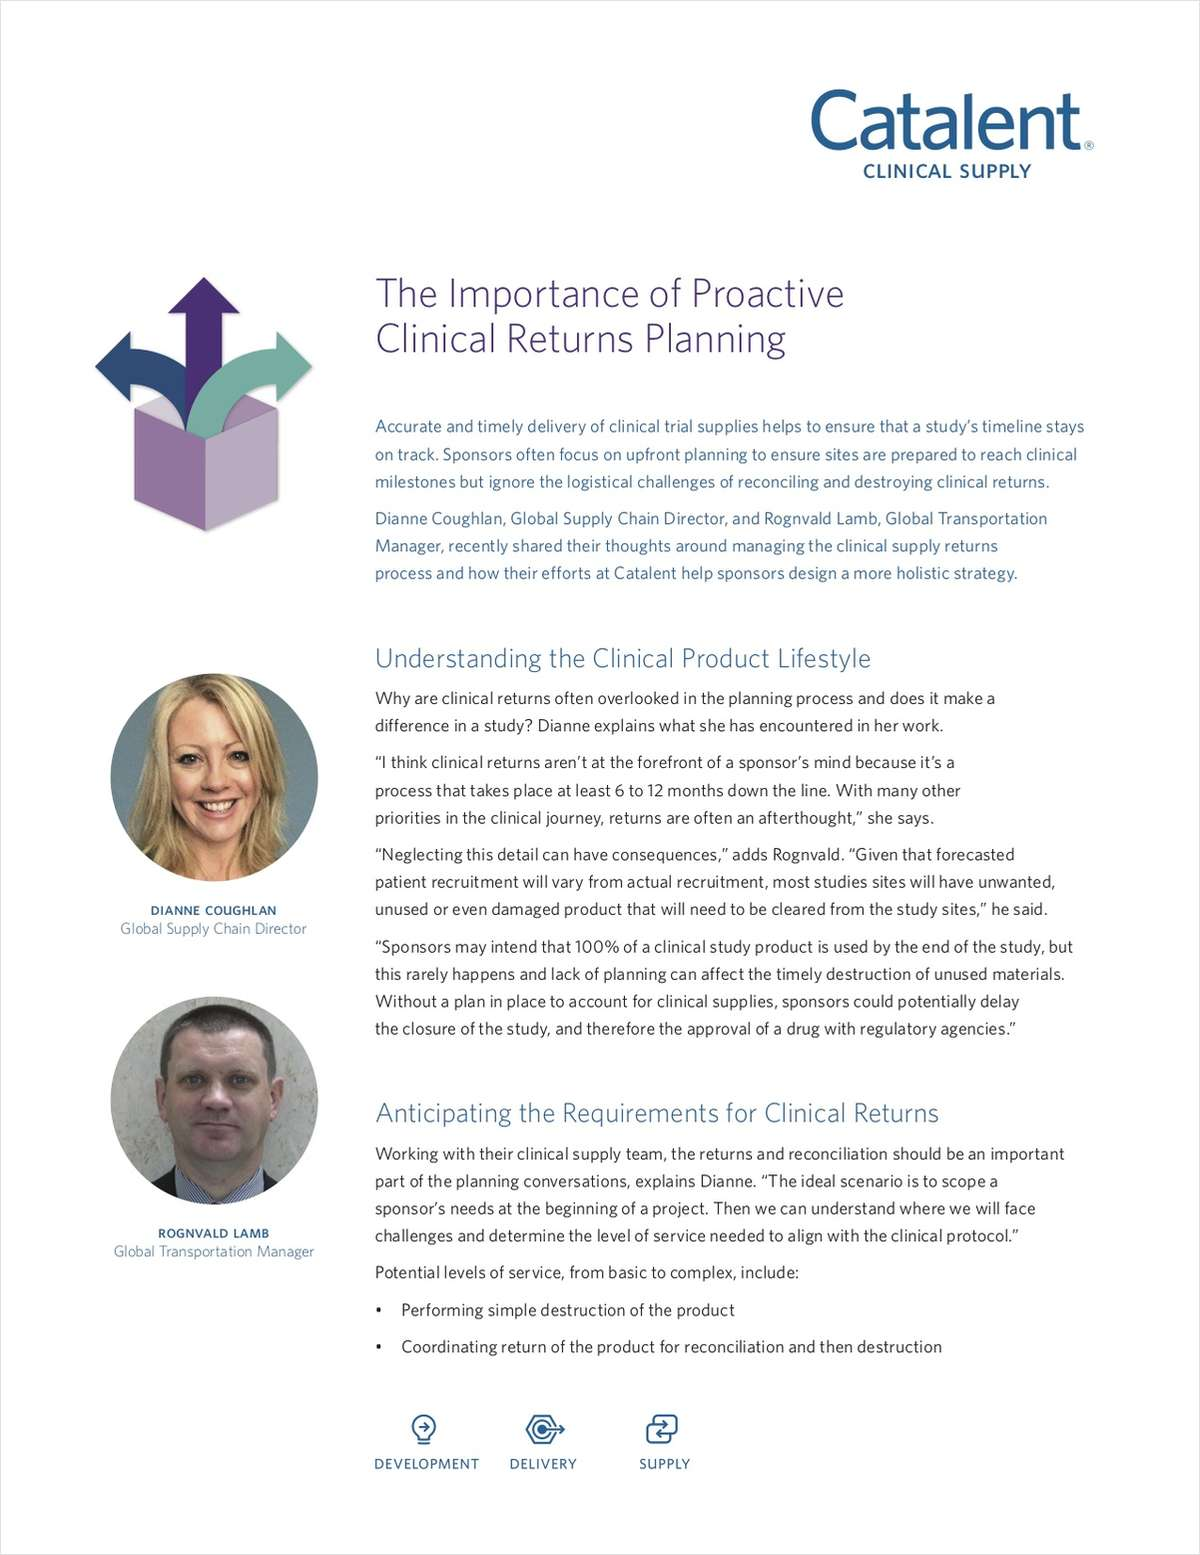 The Importance of Proactive Clinical Returns Planning